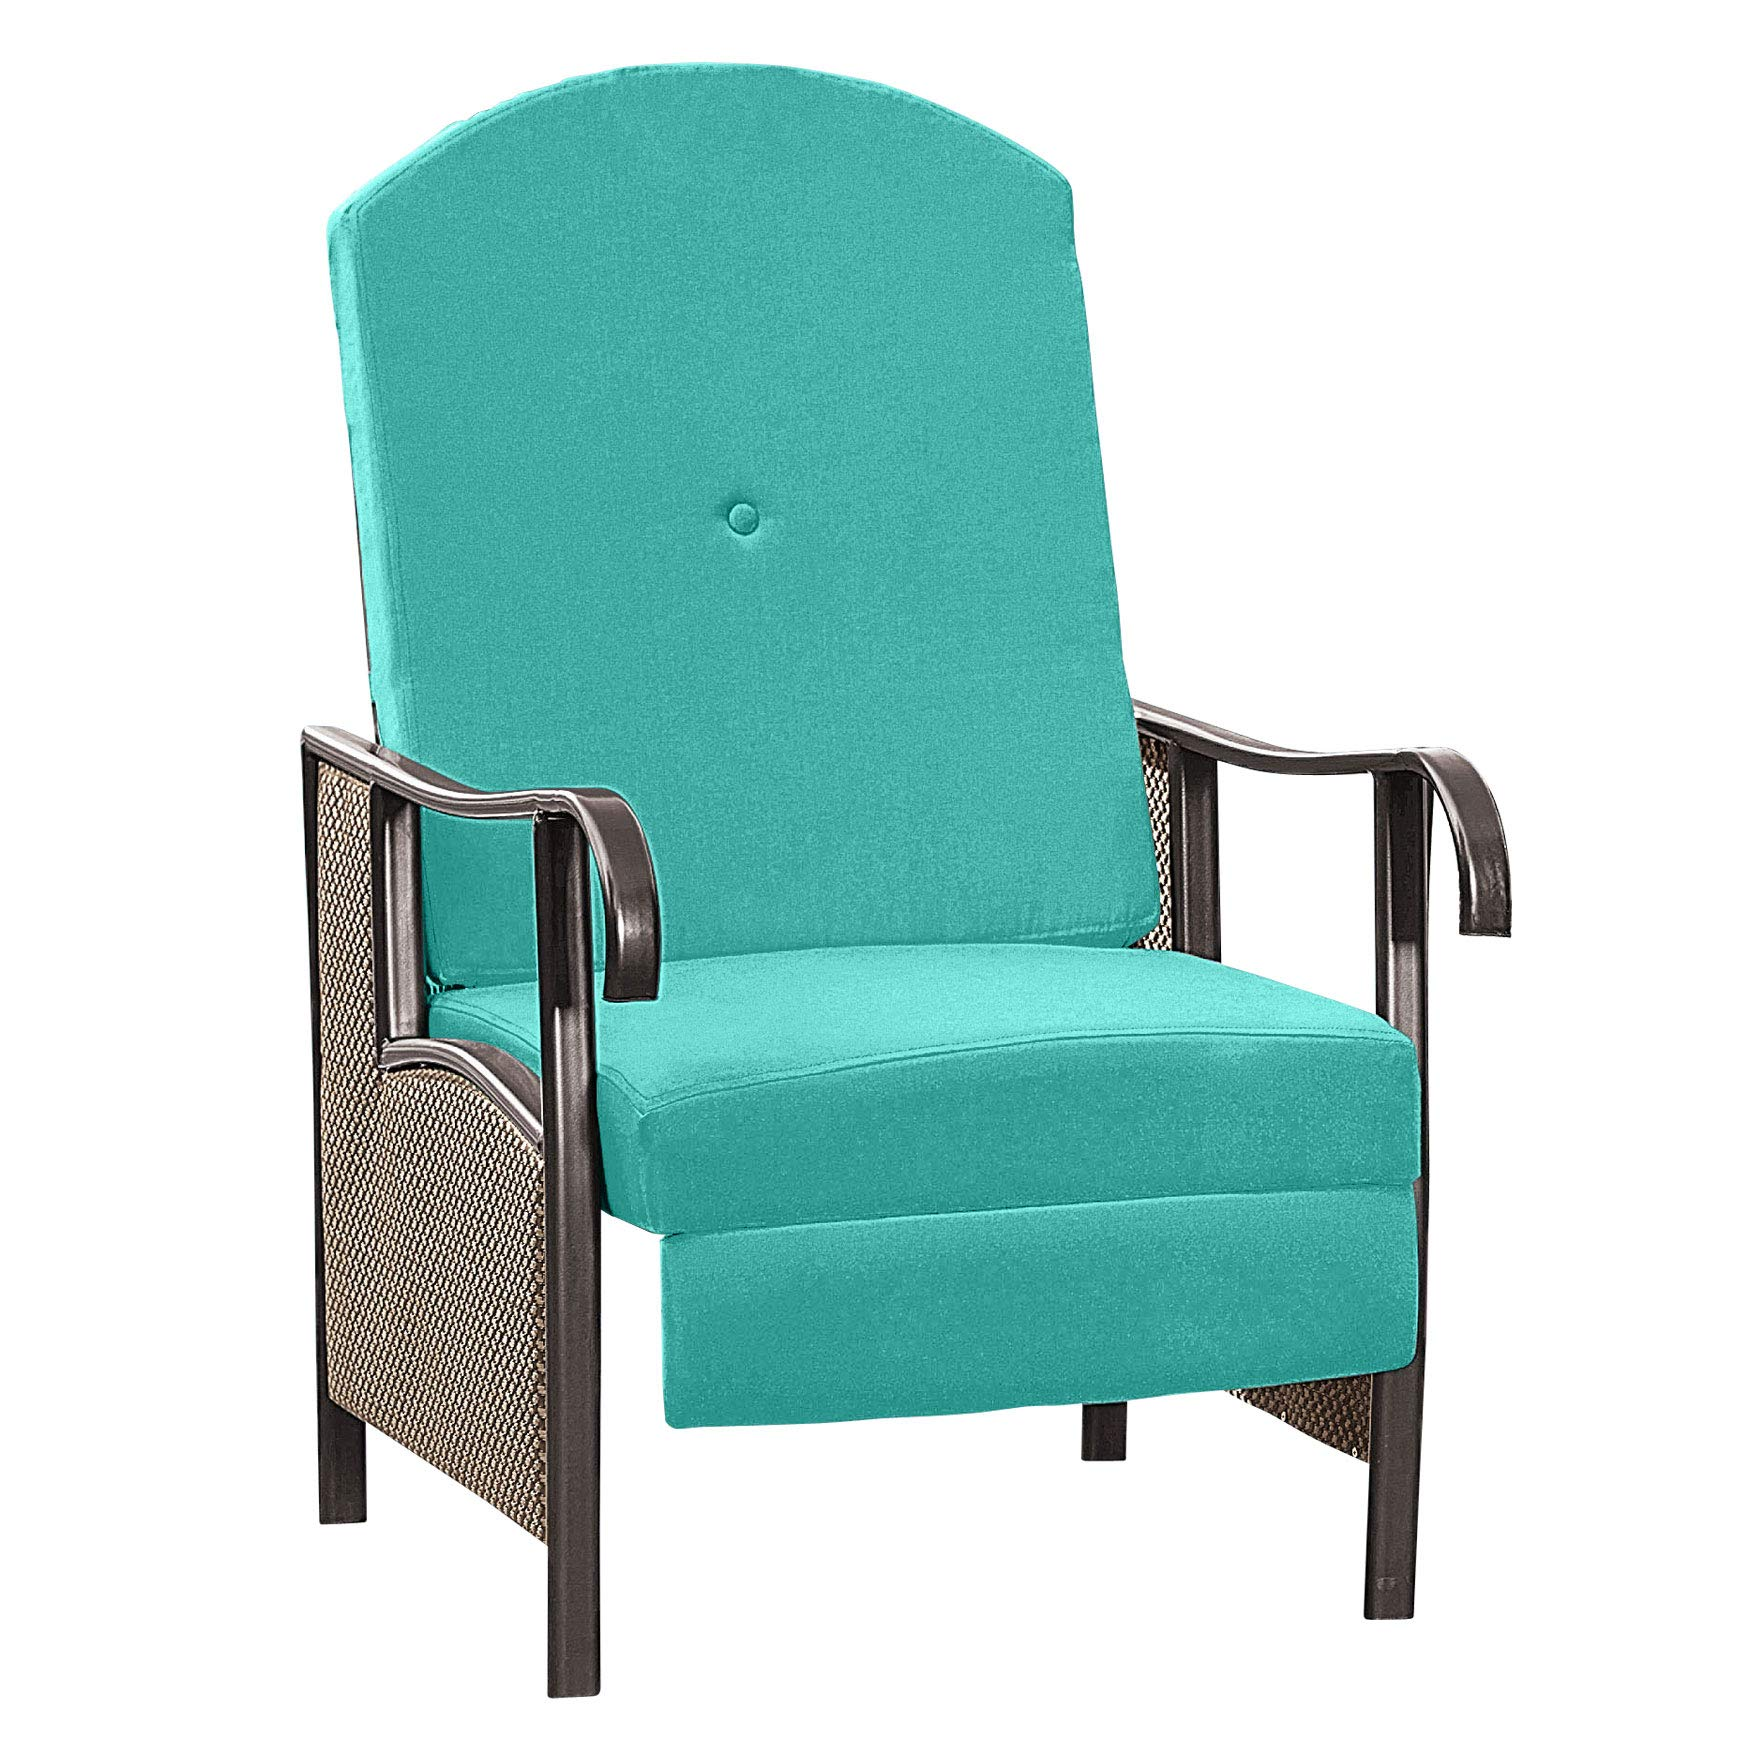 BrylaneHome Extra Wide Outdoor Recliner with Cushion - Breeze